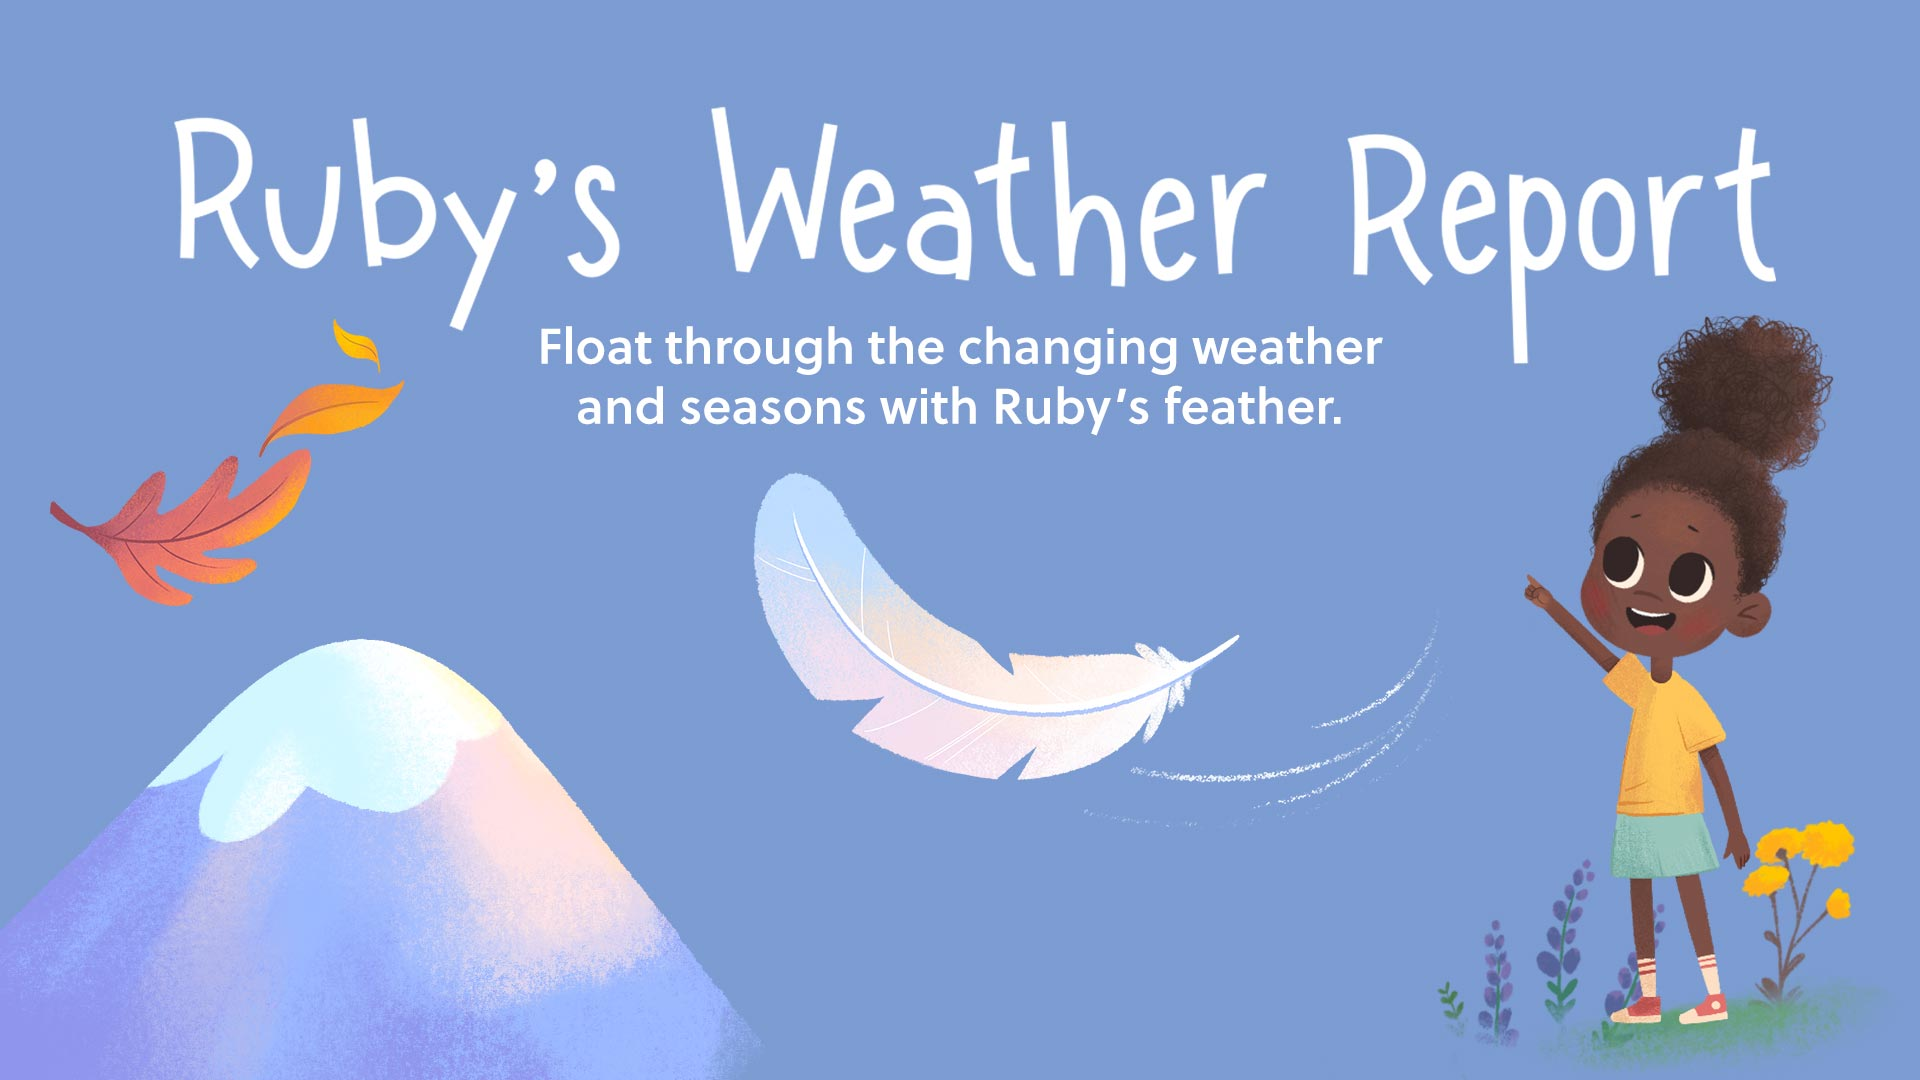 Ruby's Weather Report - Float through the changing weather and seasons with Ruby's feather.